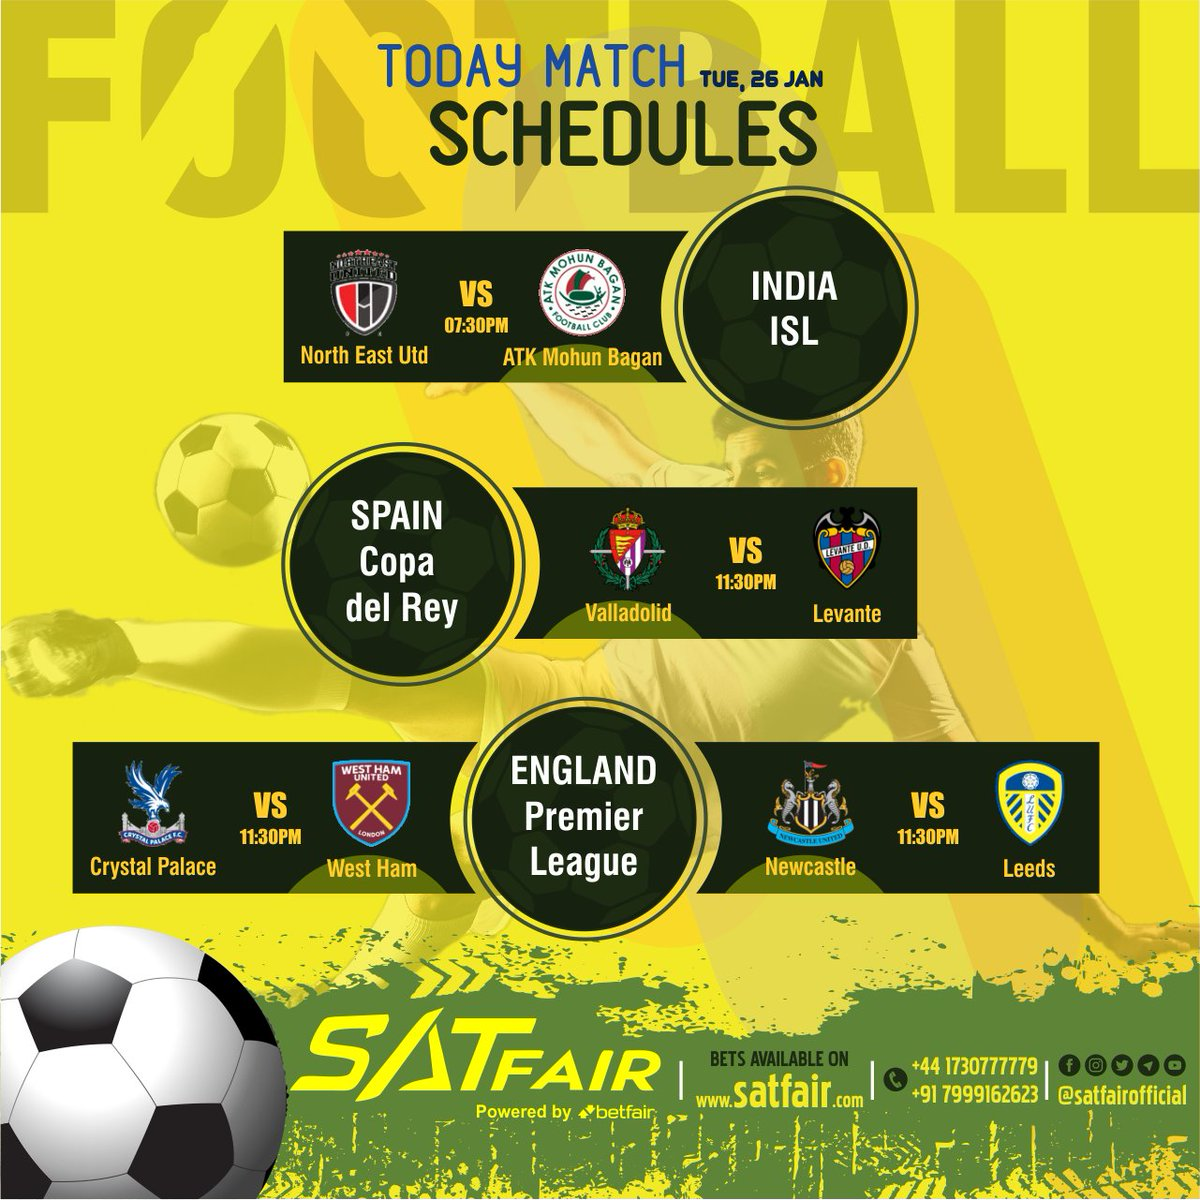 """Satfair gives everyone an """"important update"""" Satfair provides you all the matches to be played today Join now AND Start Playing Sign Up Free Minimum Deposit 5000 Minimum Withdrawal 5000 Withdrawal Timings 60-90 Min Max  Contact Now +44-1730777779  +91-7999162623 #soccer #satfair"""